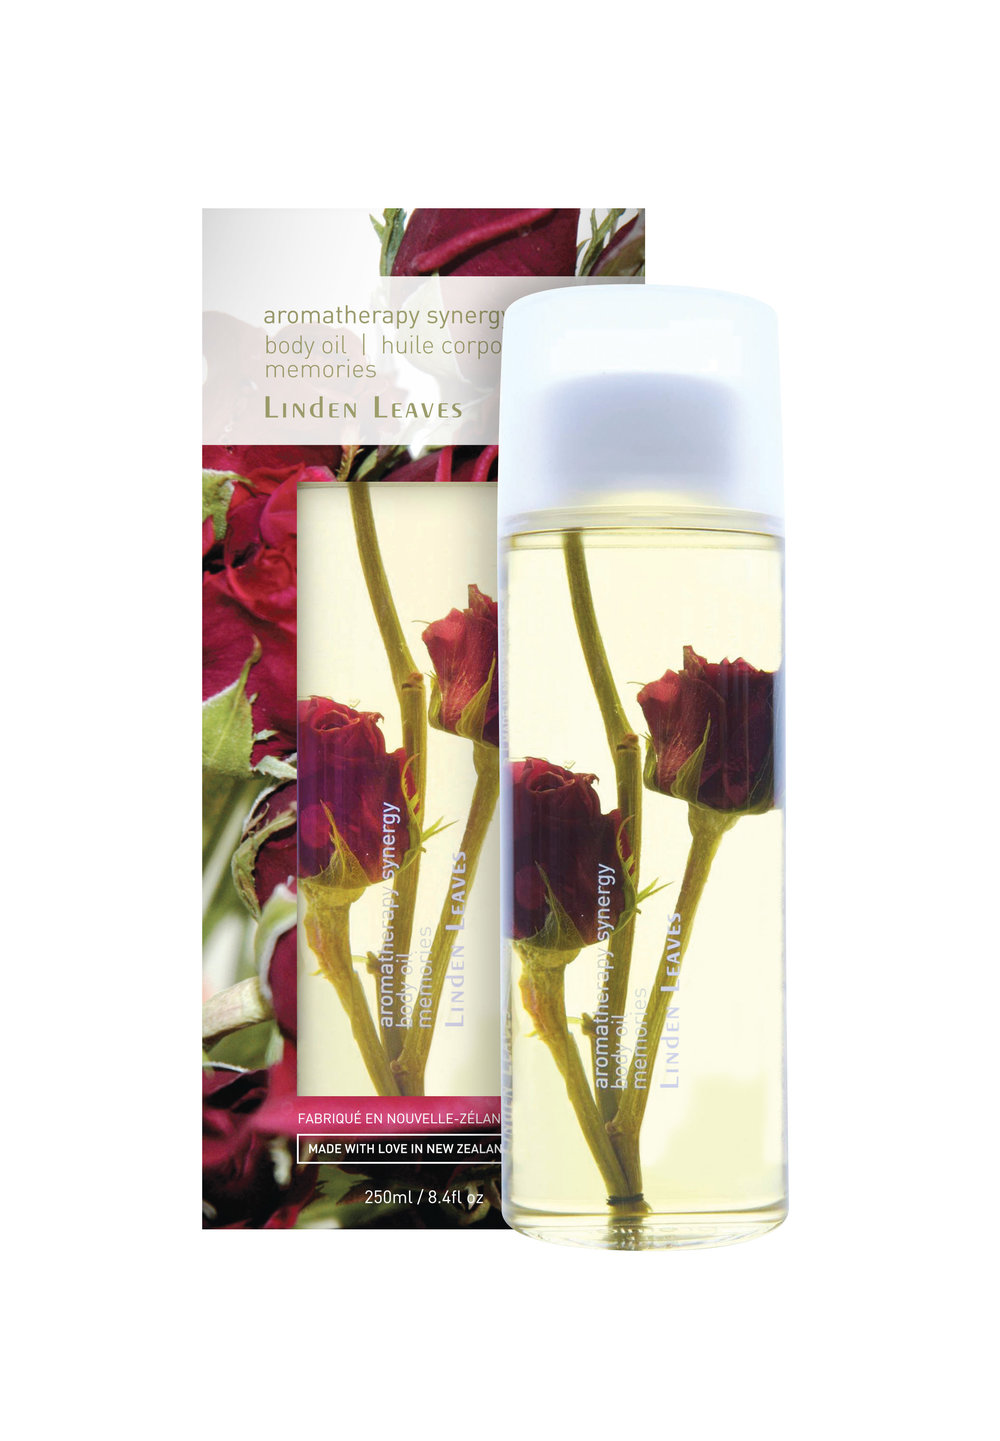 Linden Leaves_aromatherapy_synergy_memories body oil 250ml.jpg